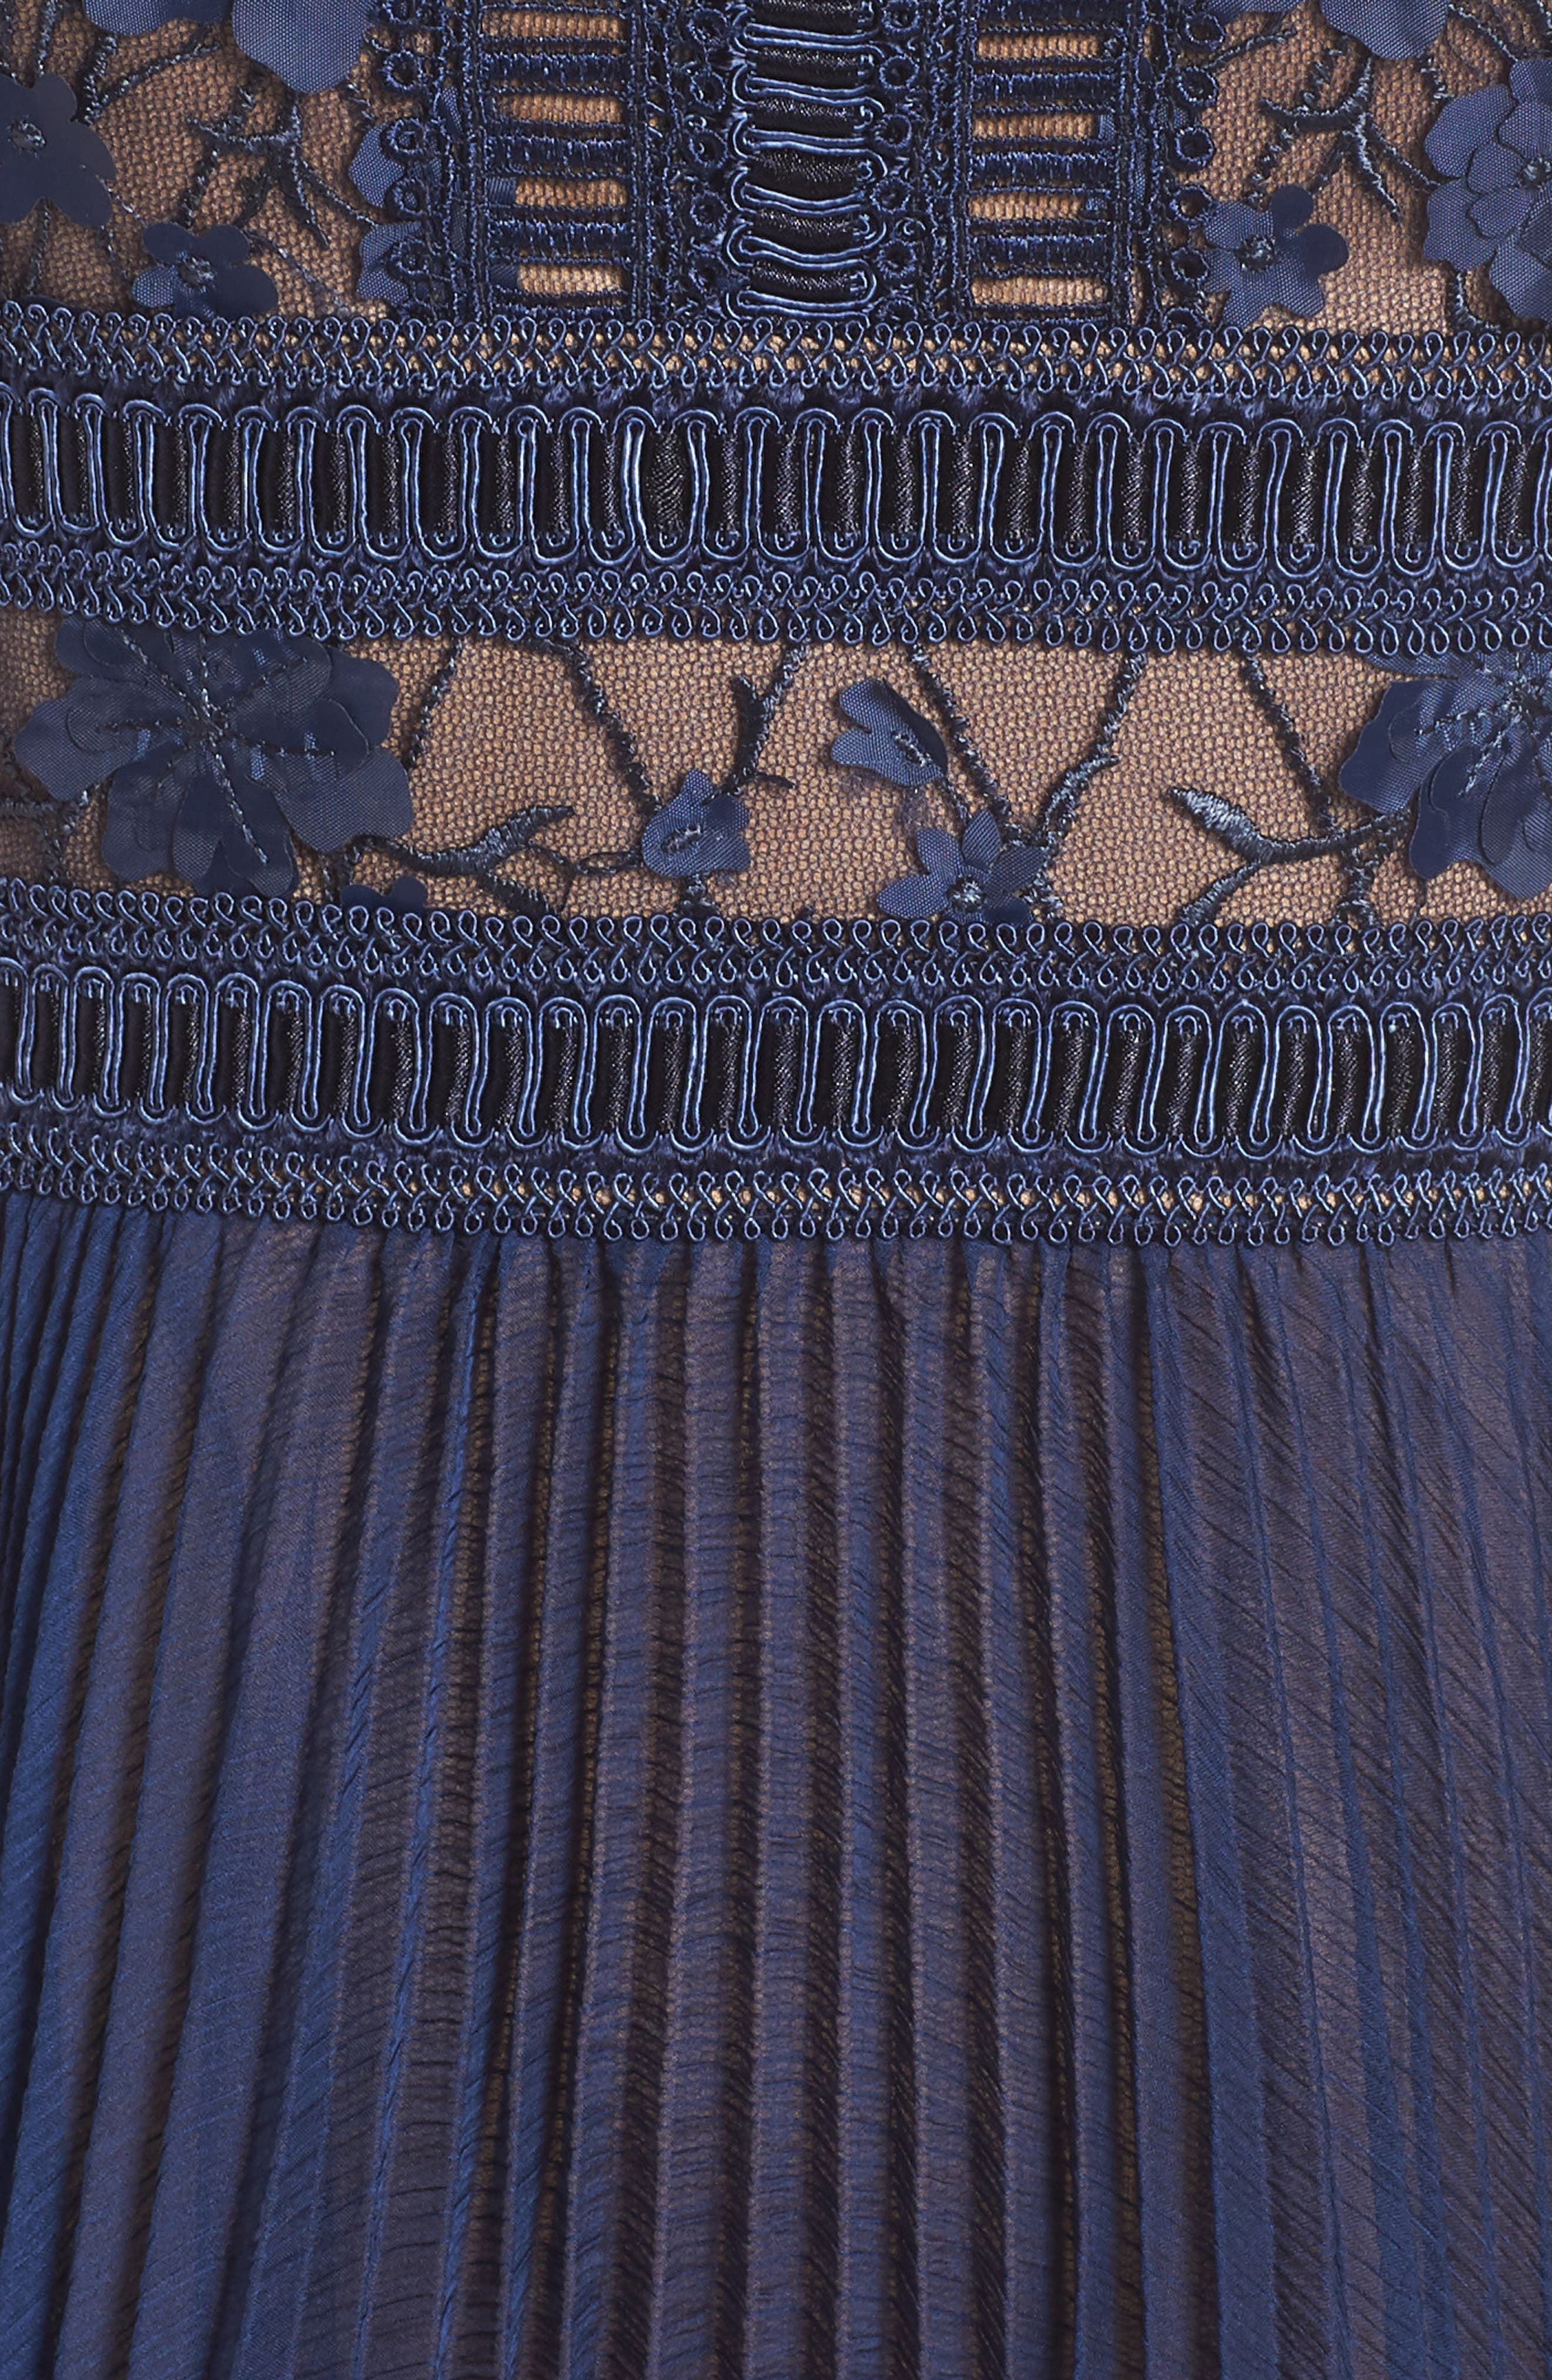 Embroidered Mesh & Chiffon Dress,                             Alternate thumbnail 5, color,                             Midnight/ Nude